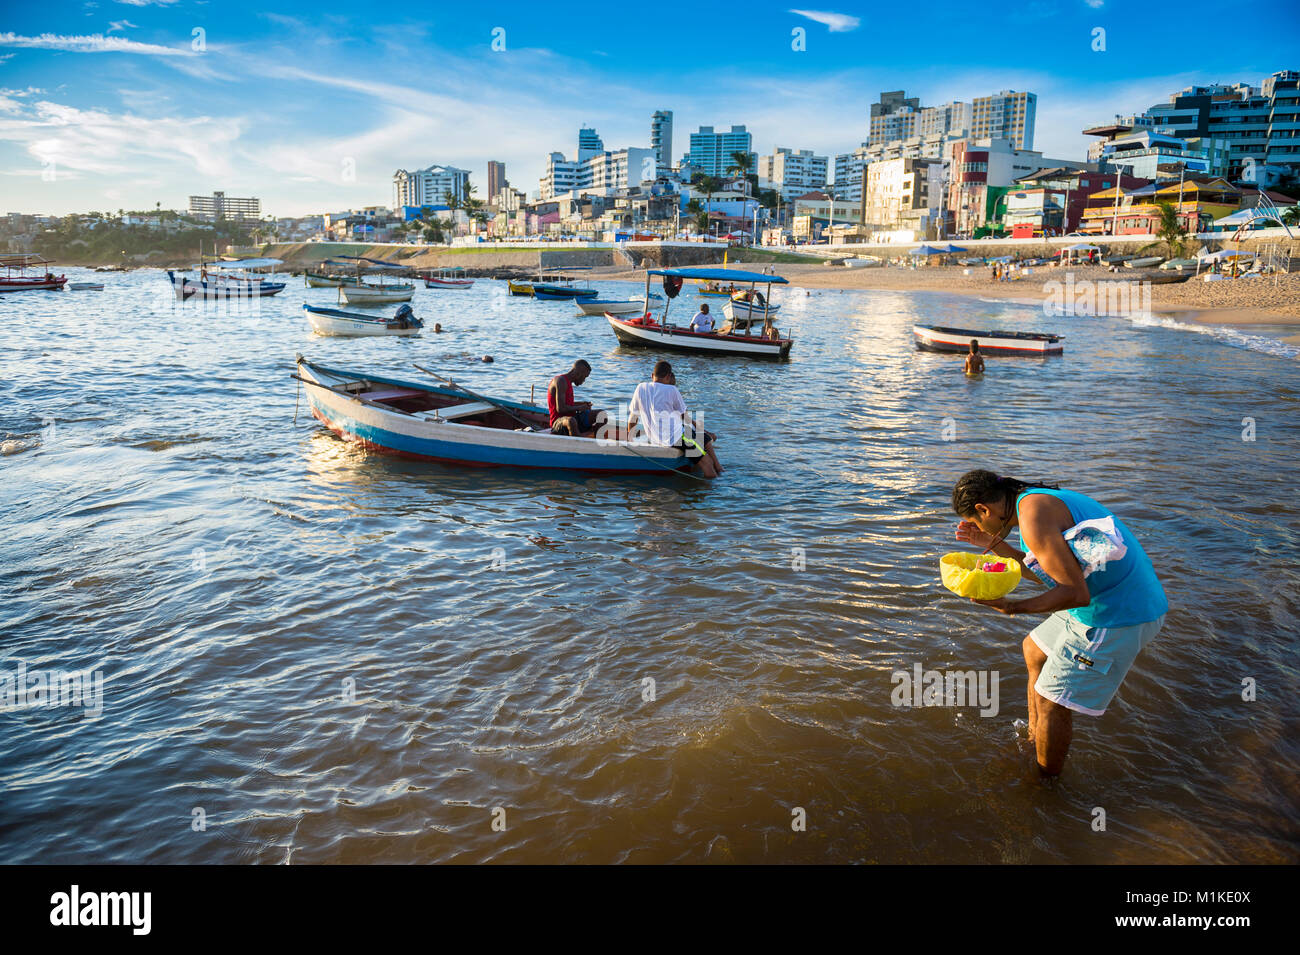 SALVADOR, BRAZIL - FEBRUARY 1, 2016: A worshipper at the annual Festival of Yemanja in Rio Vermelho stands in the - Stock Image